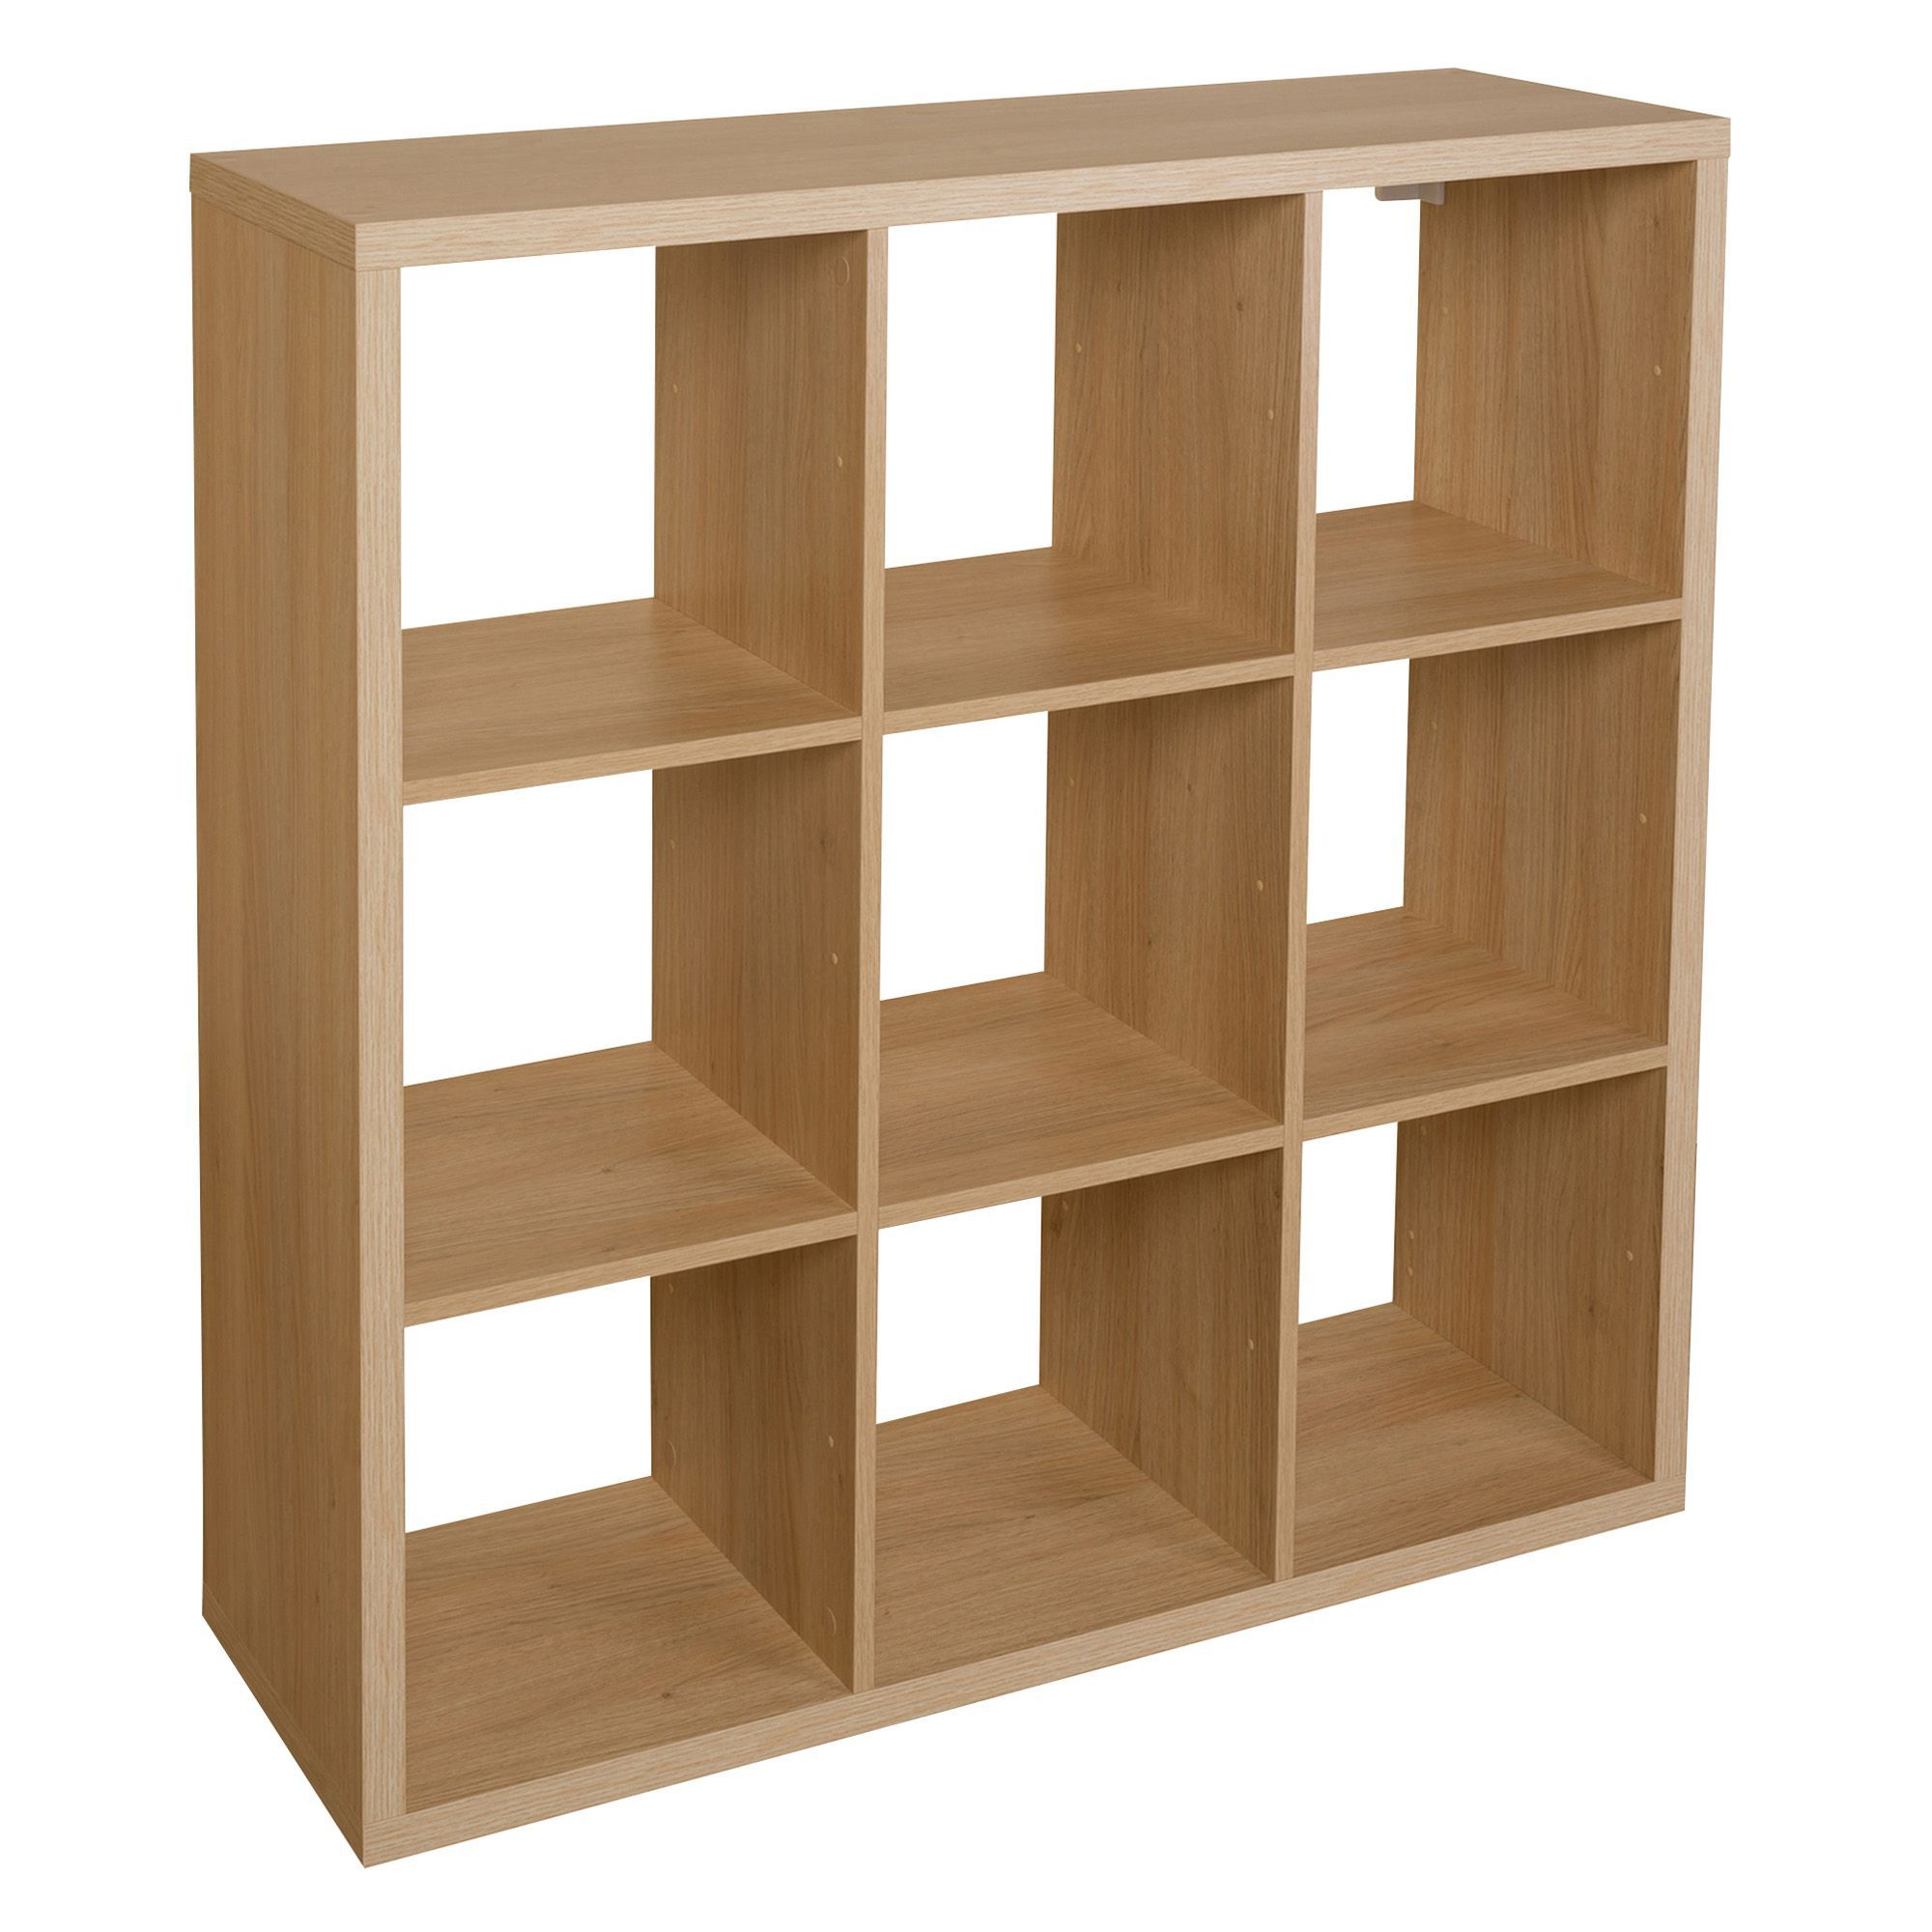 Form Miit Oak Effect 9 Cube Shelving Unit H 1080mm W Departments Diy At B Q